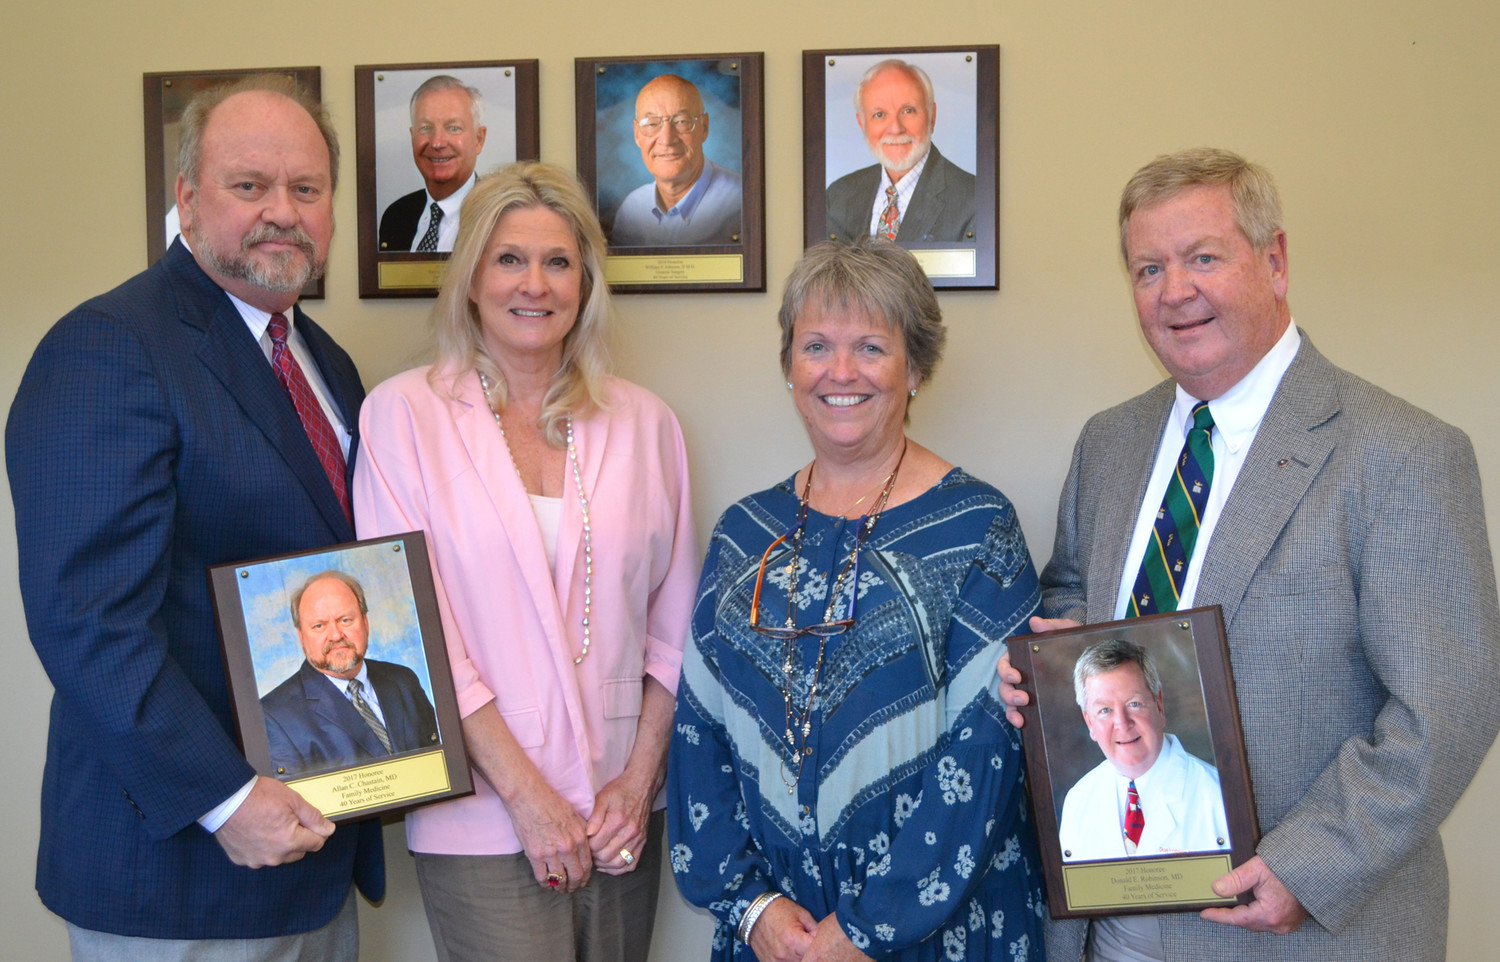 DRS. Allan Chastain, far left, and Don Robinson, far right, were joined at a ceremony Wednesday honoring the two physicians for over 40 years of service to Tennova Healthcare-Cleveland (and its earlier incarnations). They were joined by their wives, Jeanie Chastain and Dawn Robinson.